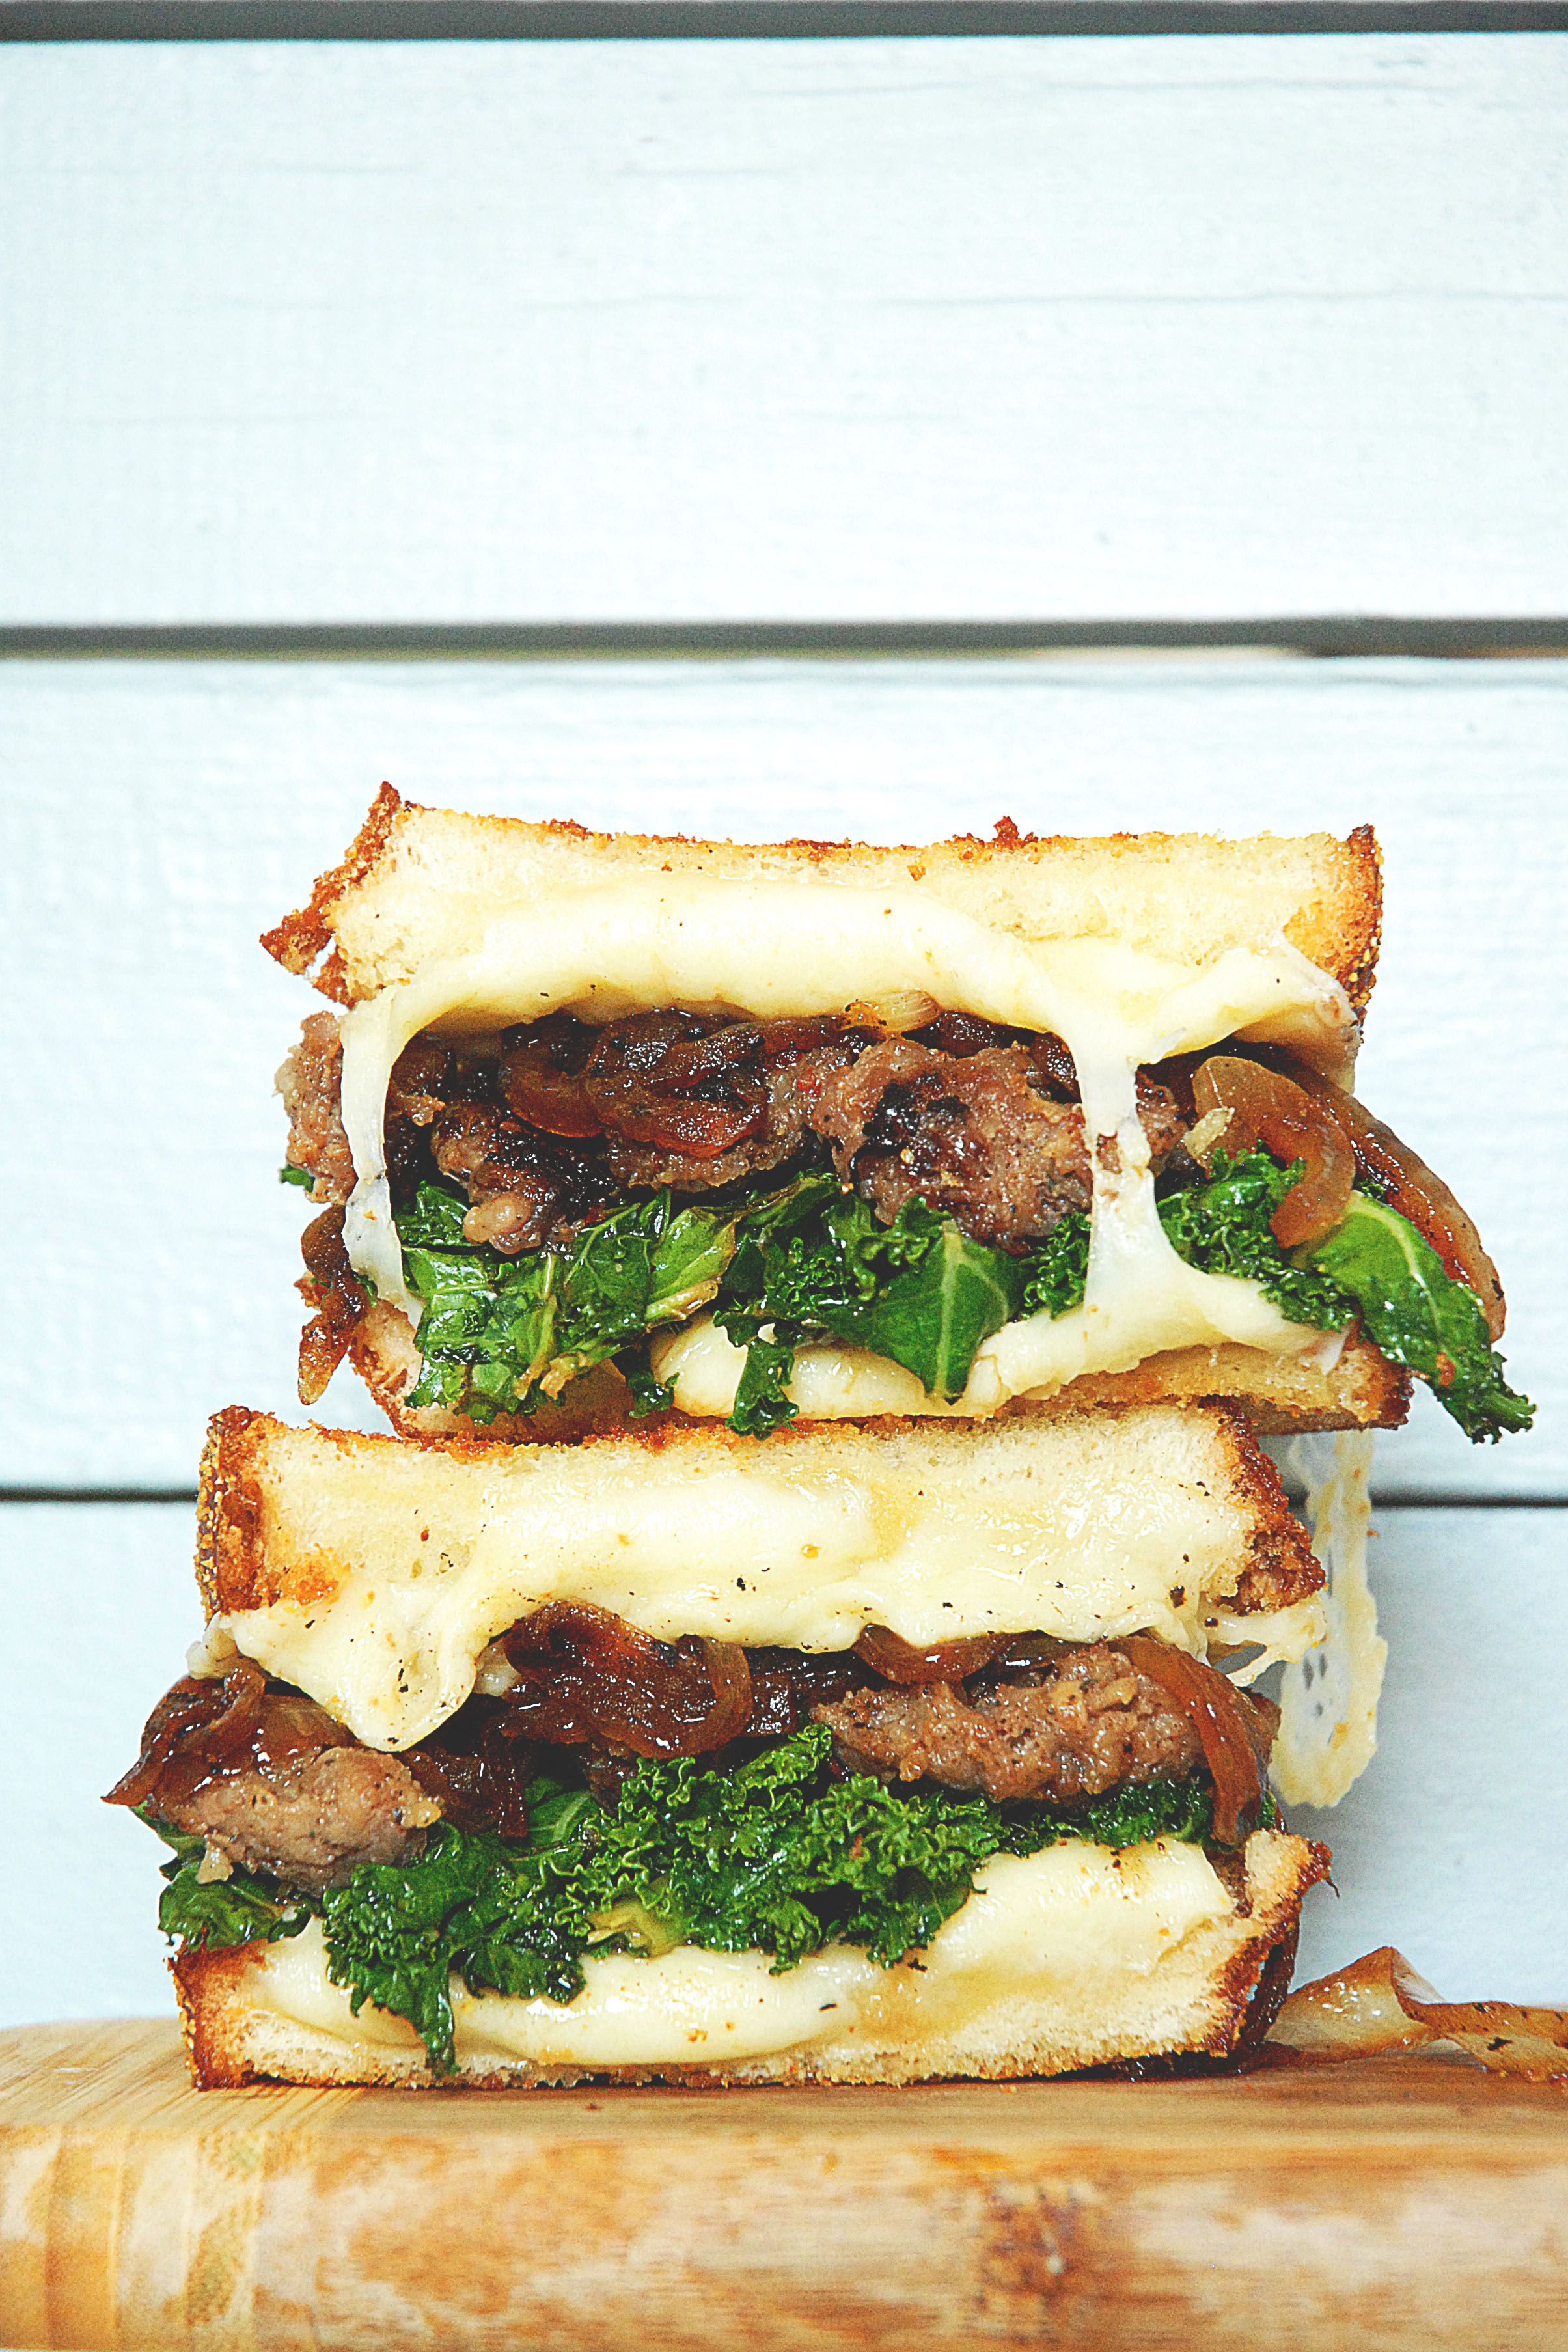 kale-and-sausage-grilled-cheese-social-1.jpg